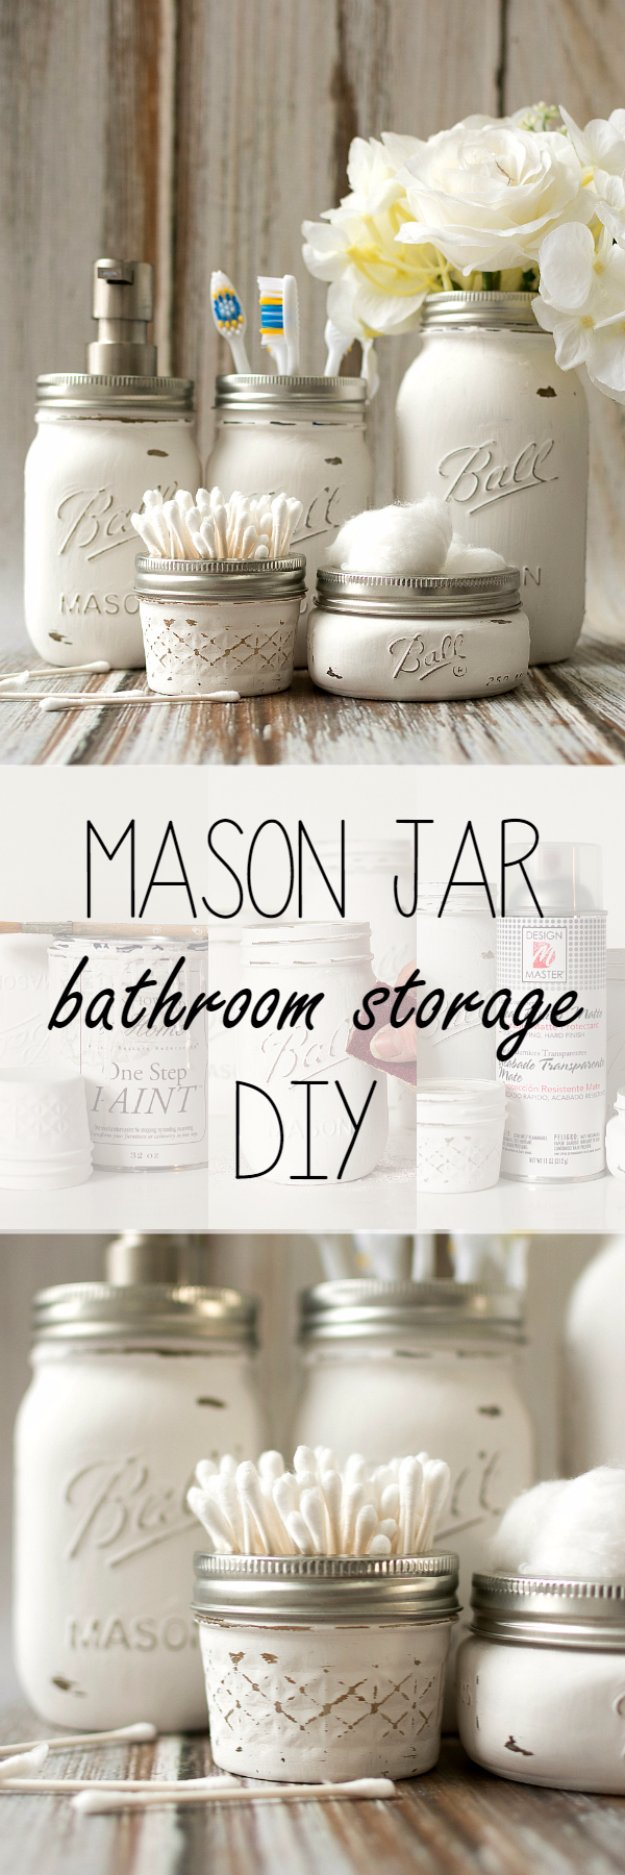 Bathroom decor accessories - Diy Bathroom Decor Ideas Mason Jar Bathroom Storage Accessories Cool Do It Yourself Bath